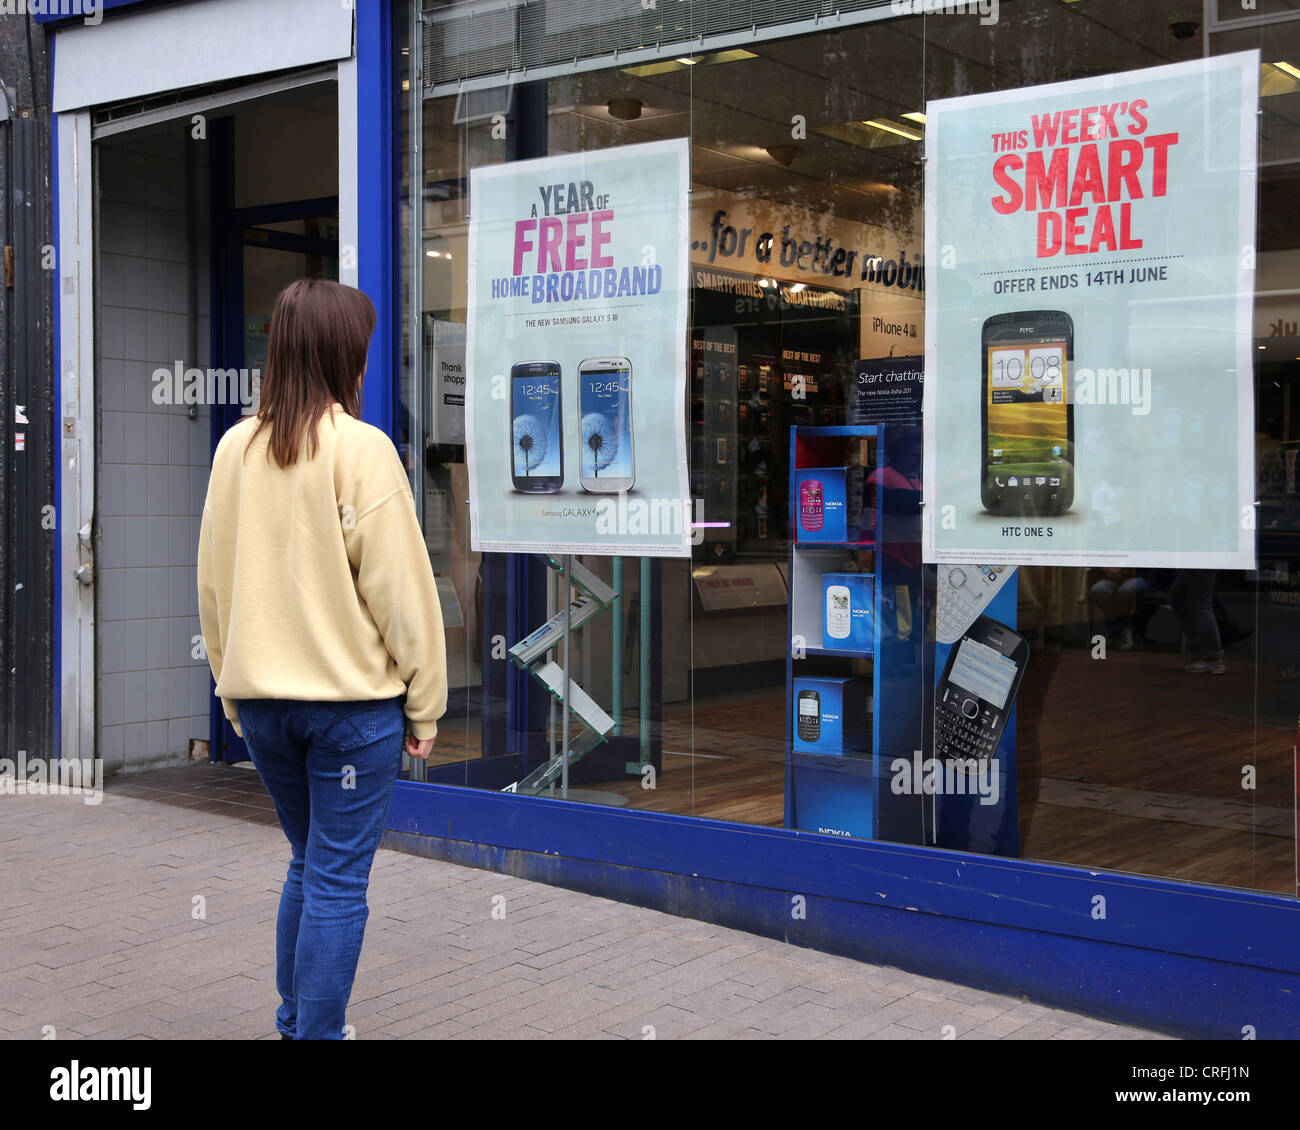 a58bf4a6a0f Woman Looking At Mobile Phones Advertised In Mobile Phone Shop Window Surrey  England